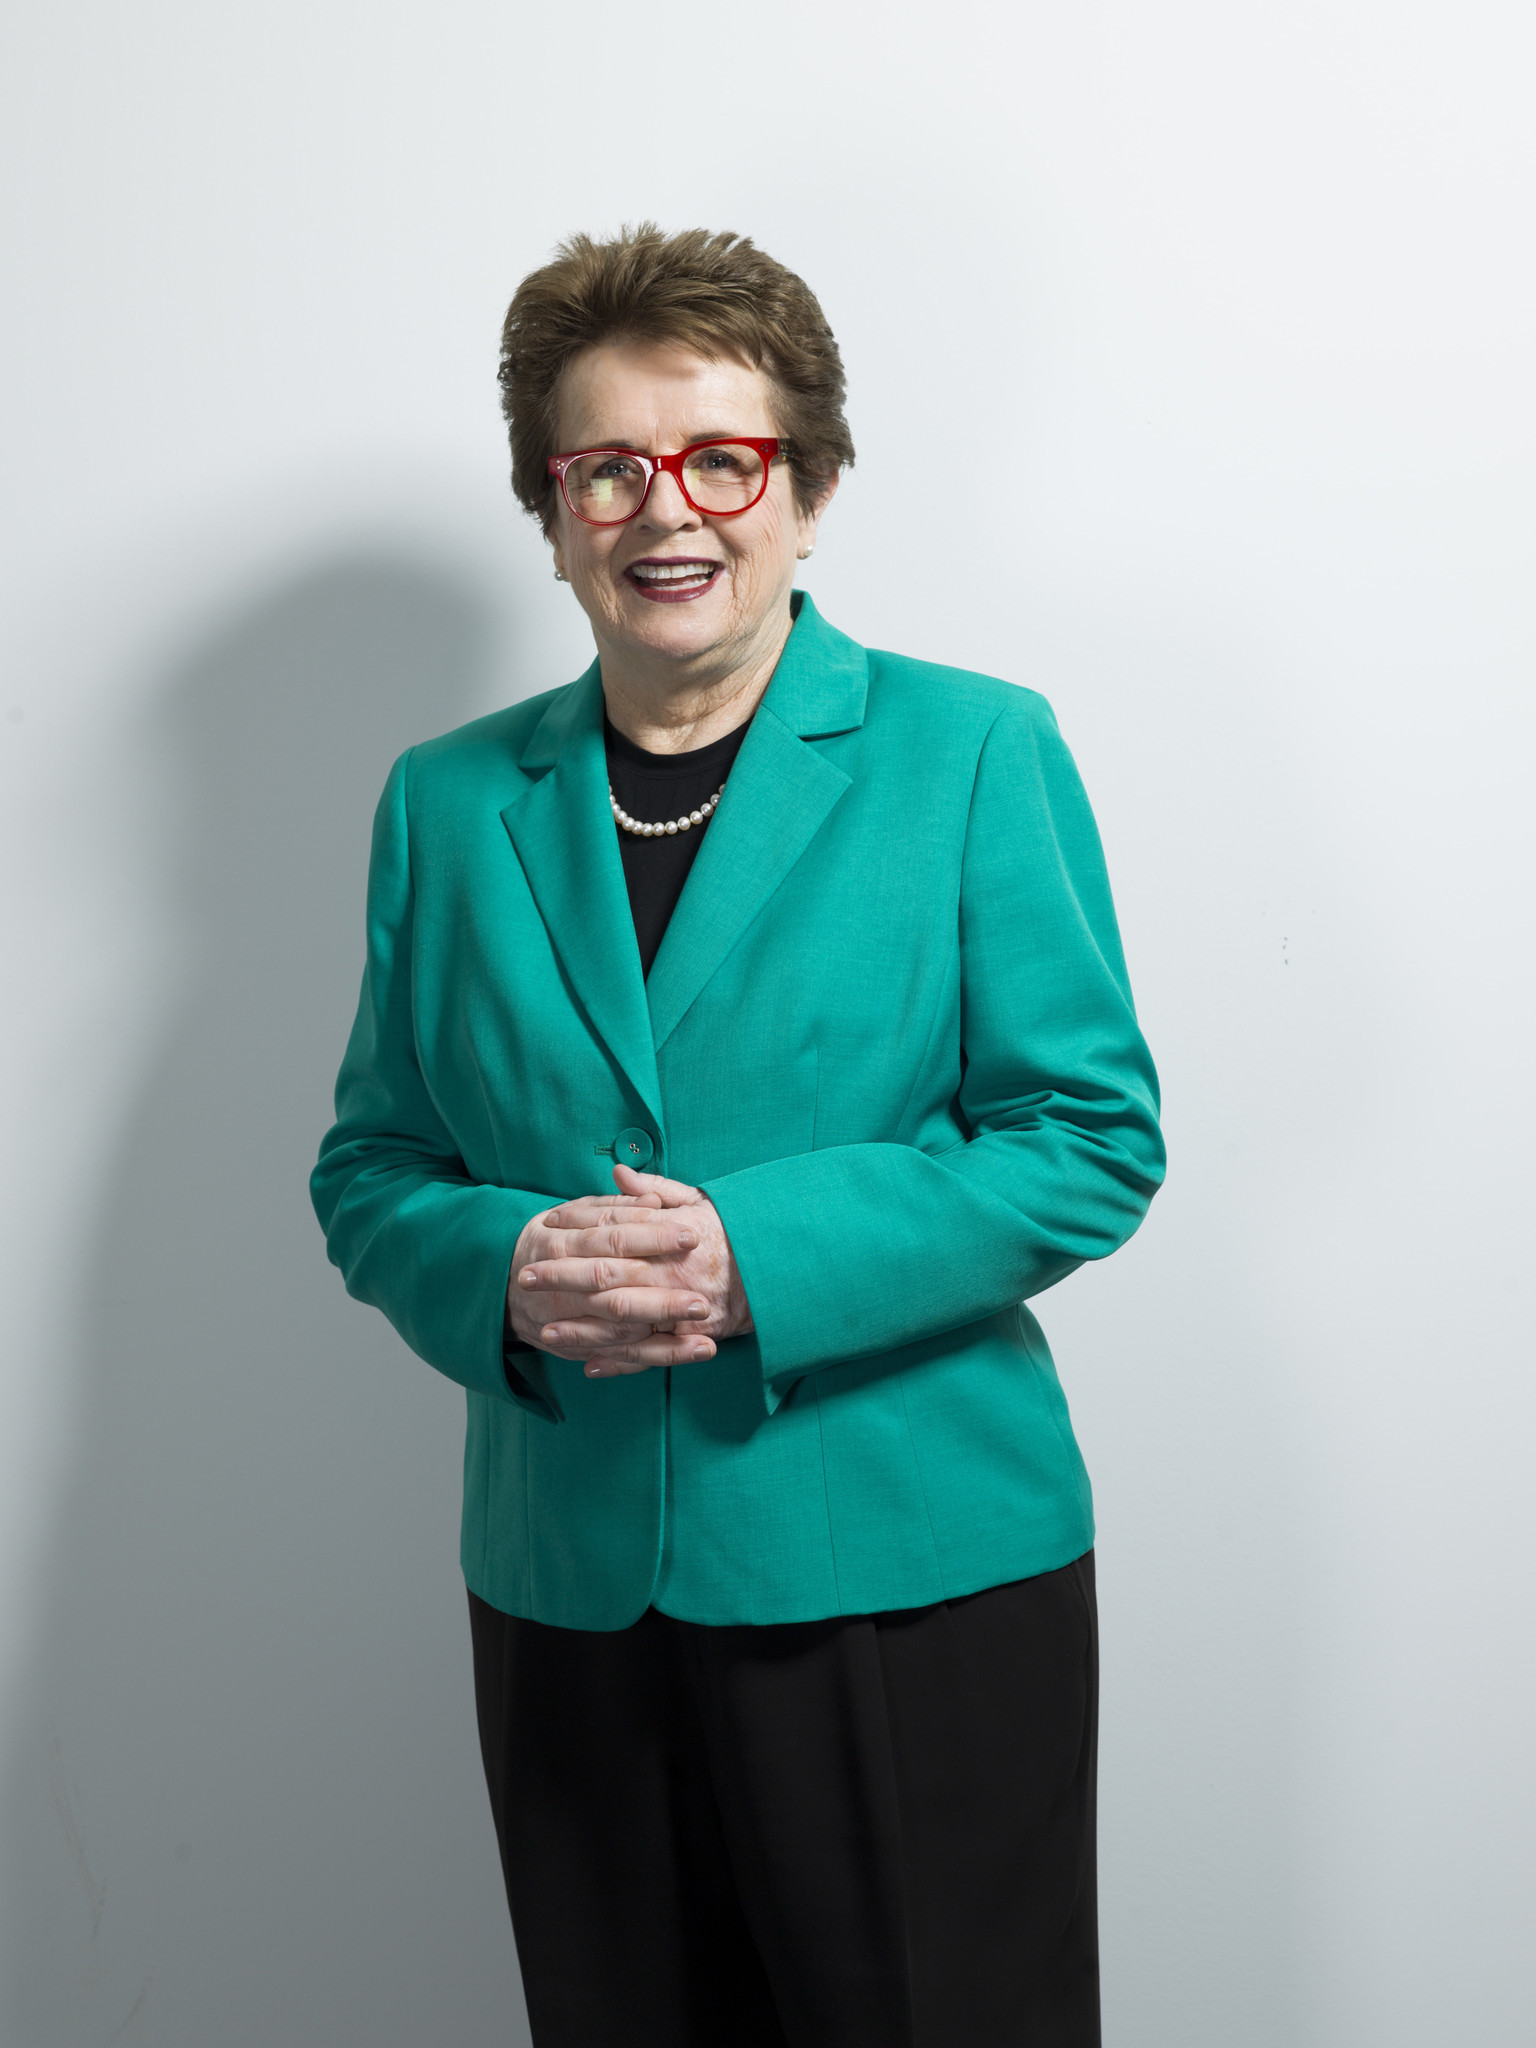 billie jean king - photo #11